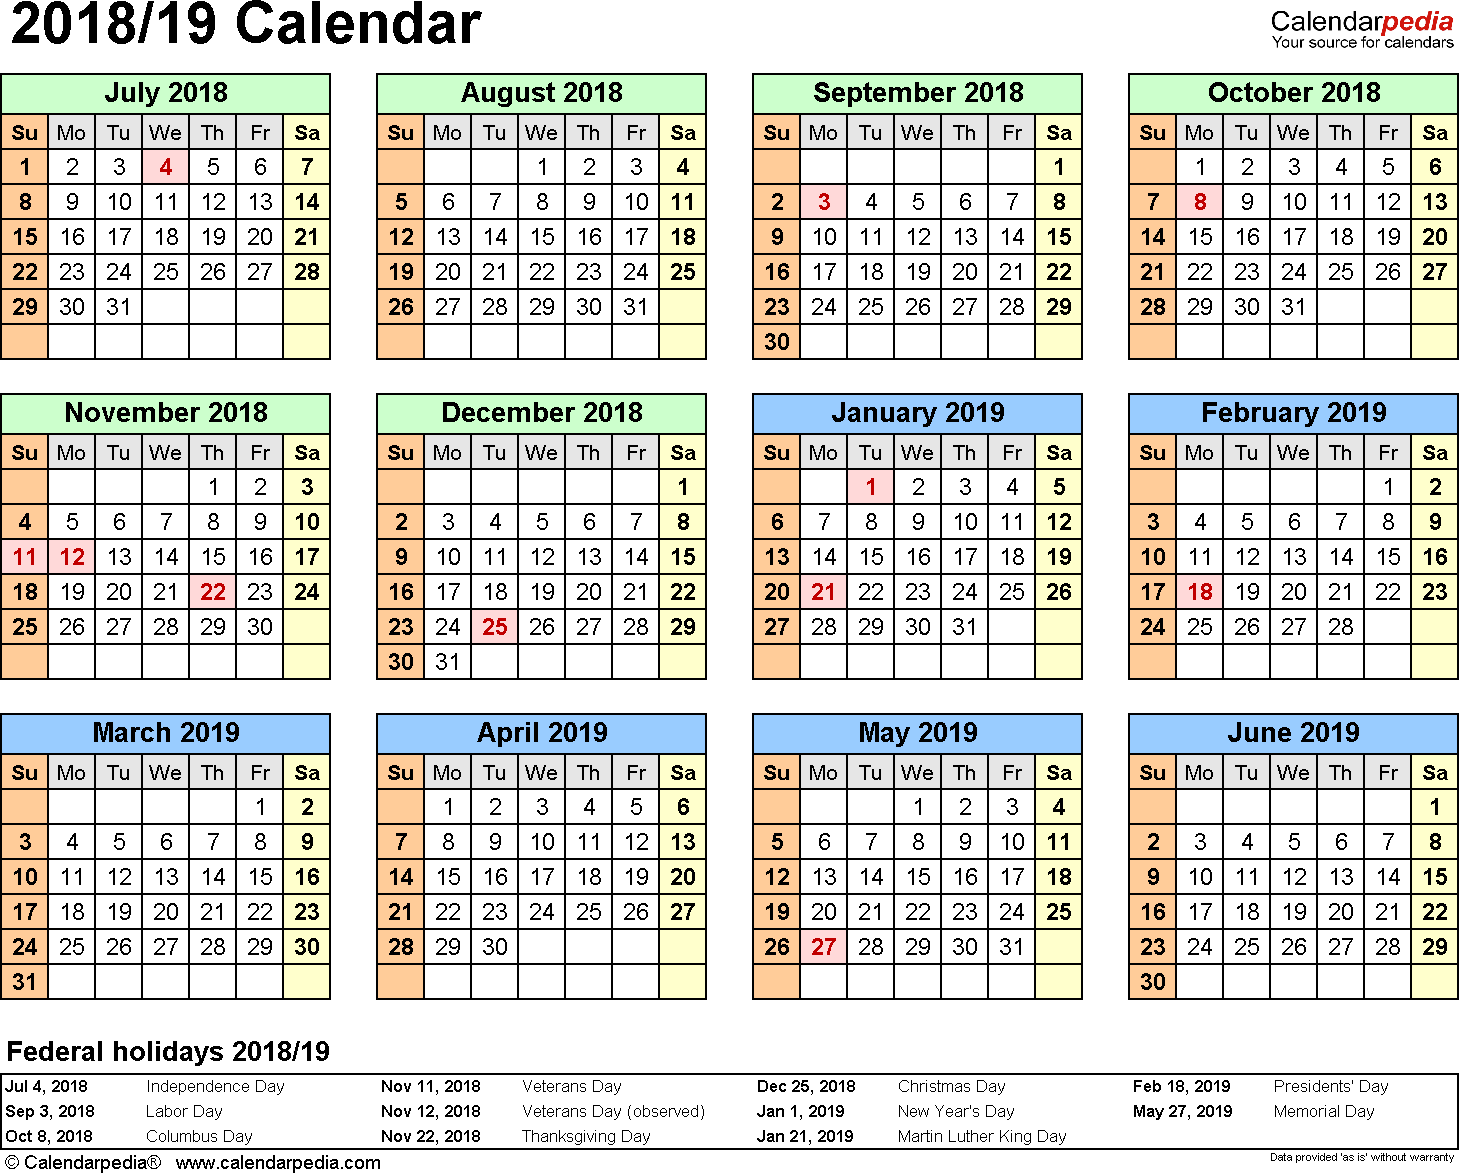 Template 3: 2018/2019 split year/half year calendar, for Microsoft Word (.docx file), landscape, 1 page, year at a glance